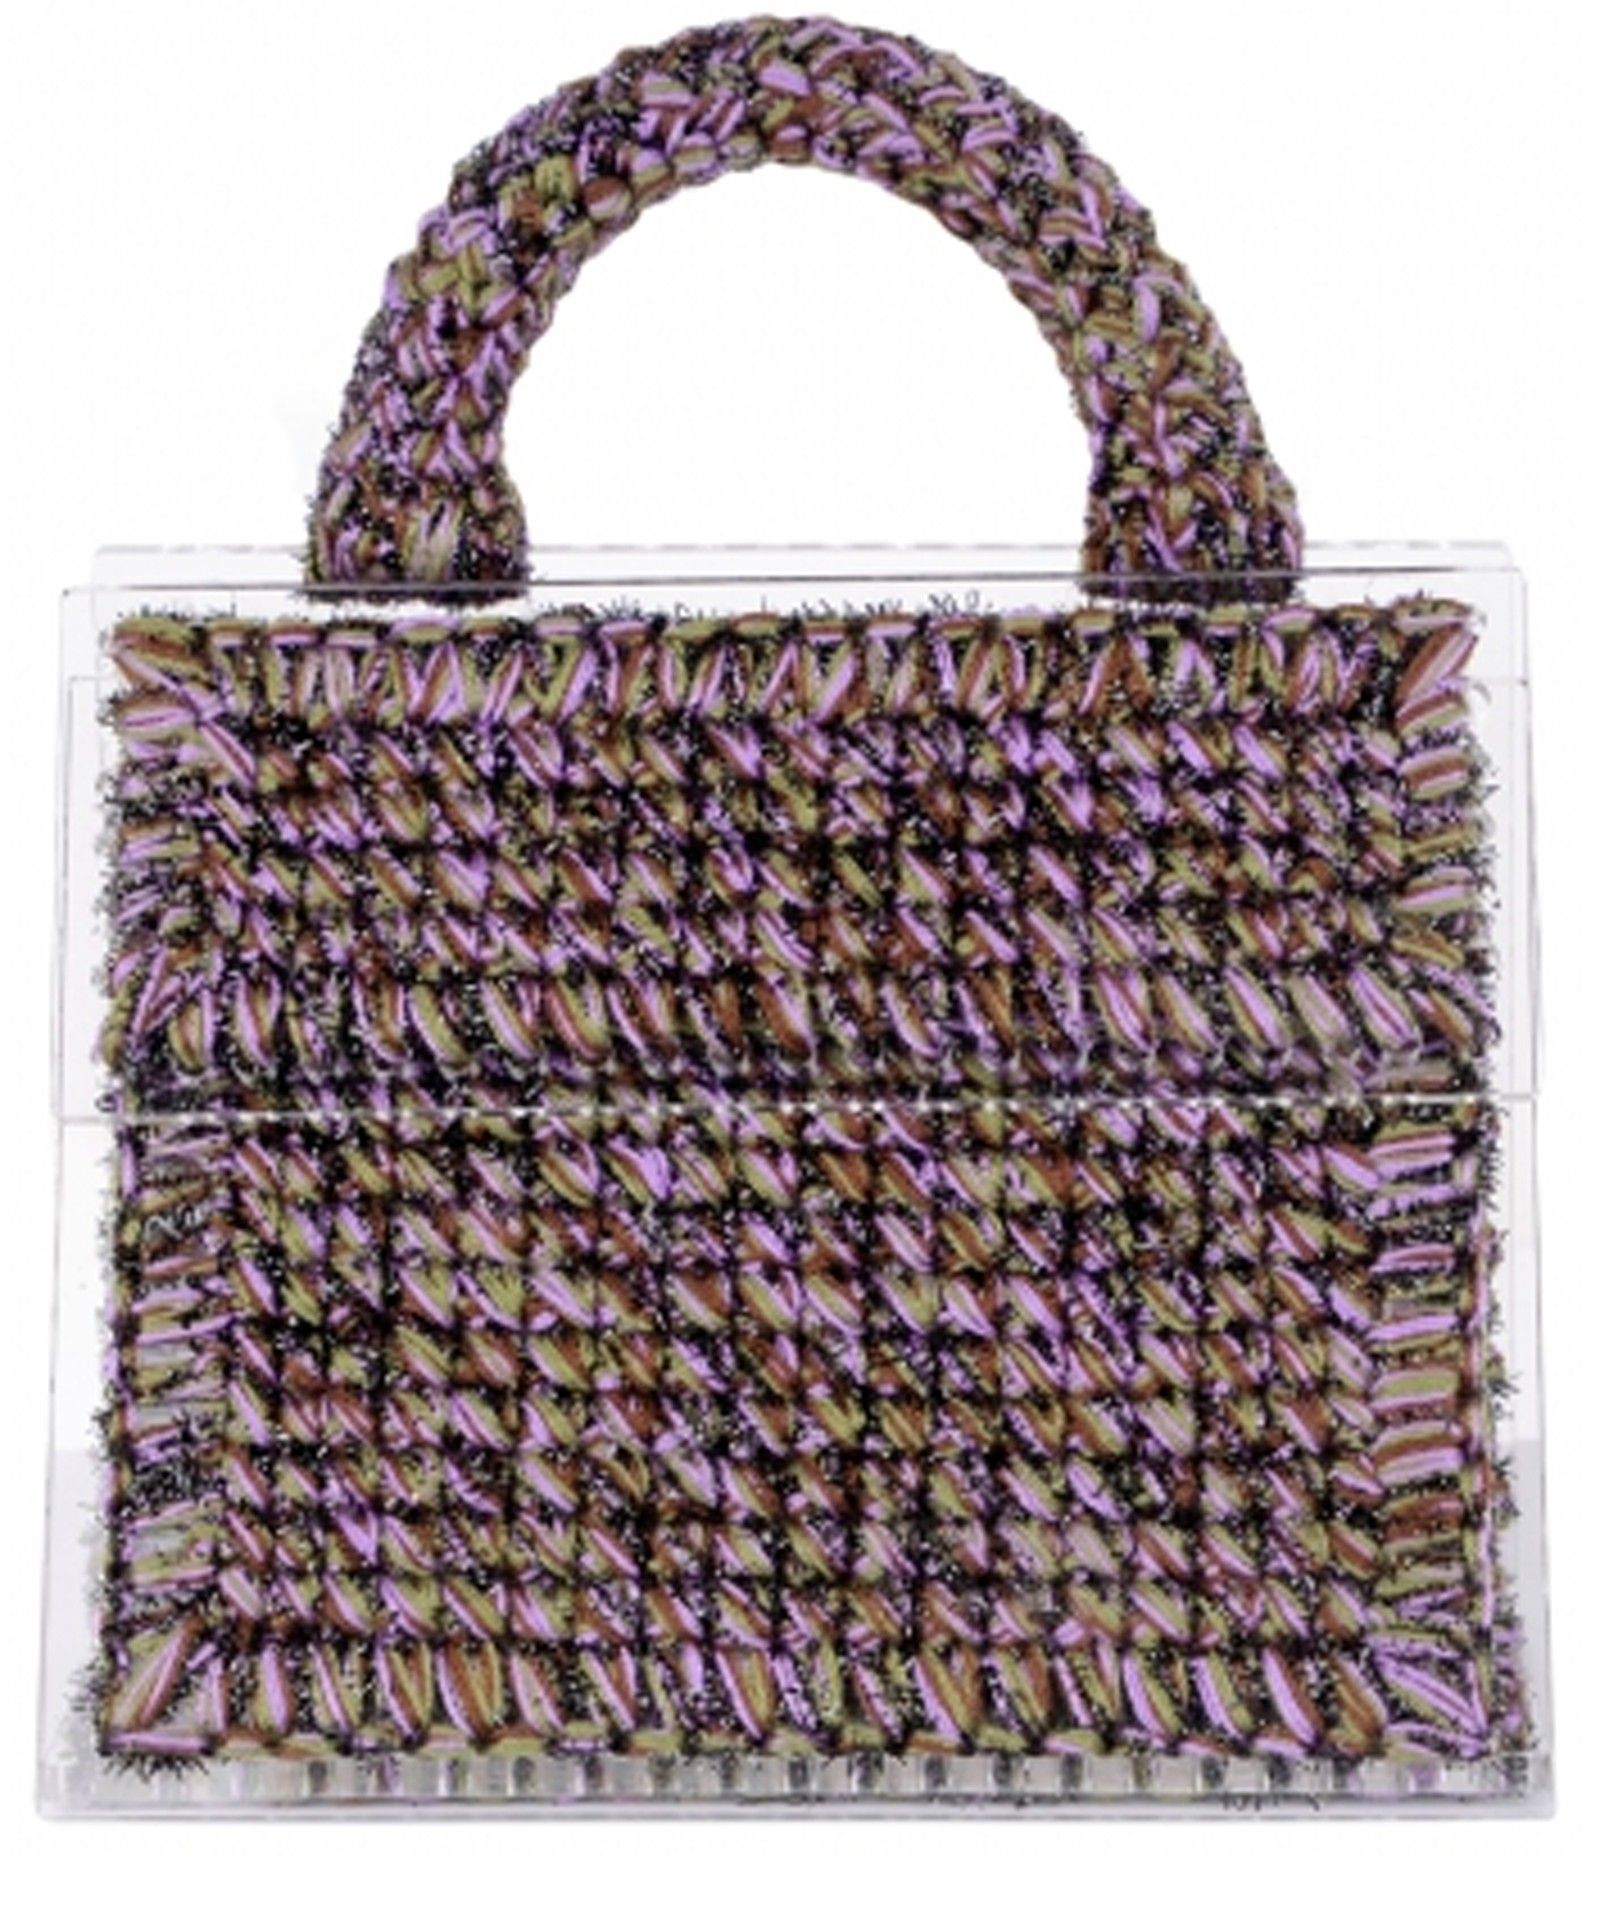 Copacabana large woven handbag - Black 0711